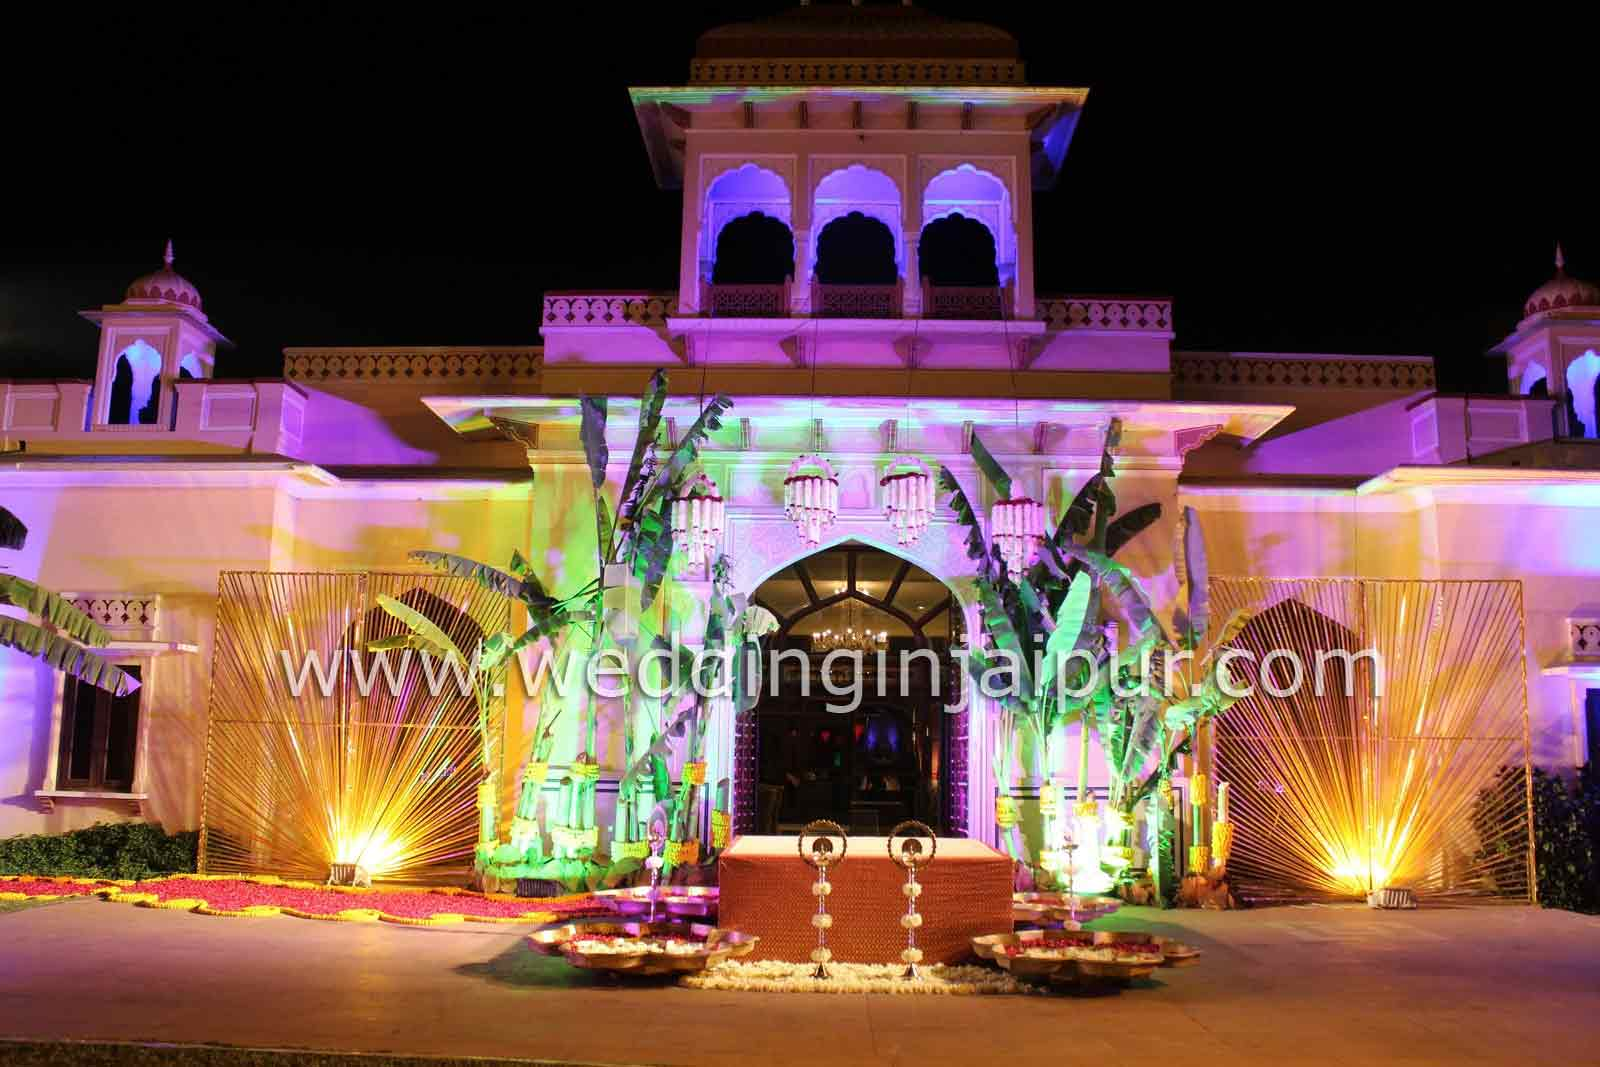 Located Close To The Airport Rambagh Palace Former Residence Of Maharaja Jaipur Is Spread Over 47 Acres Gardens